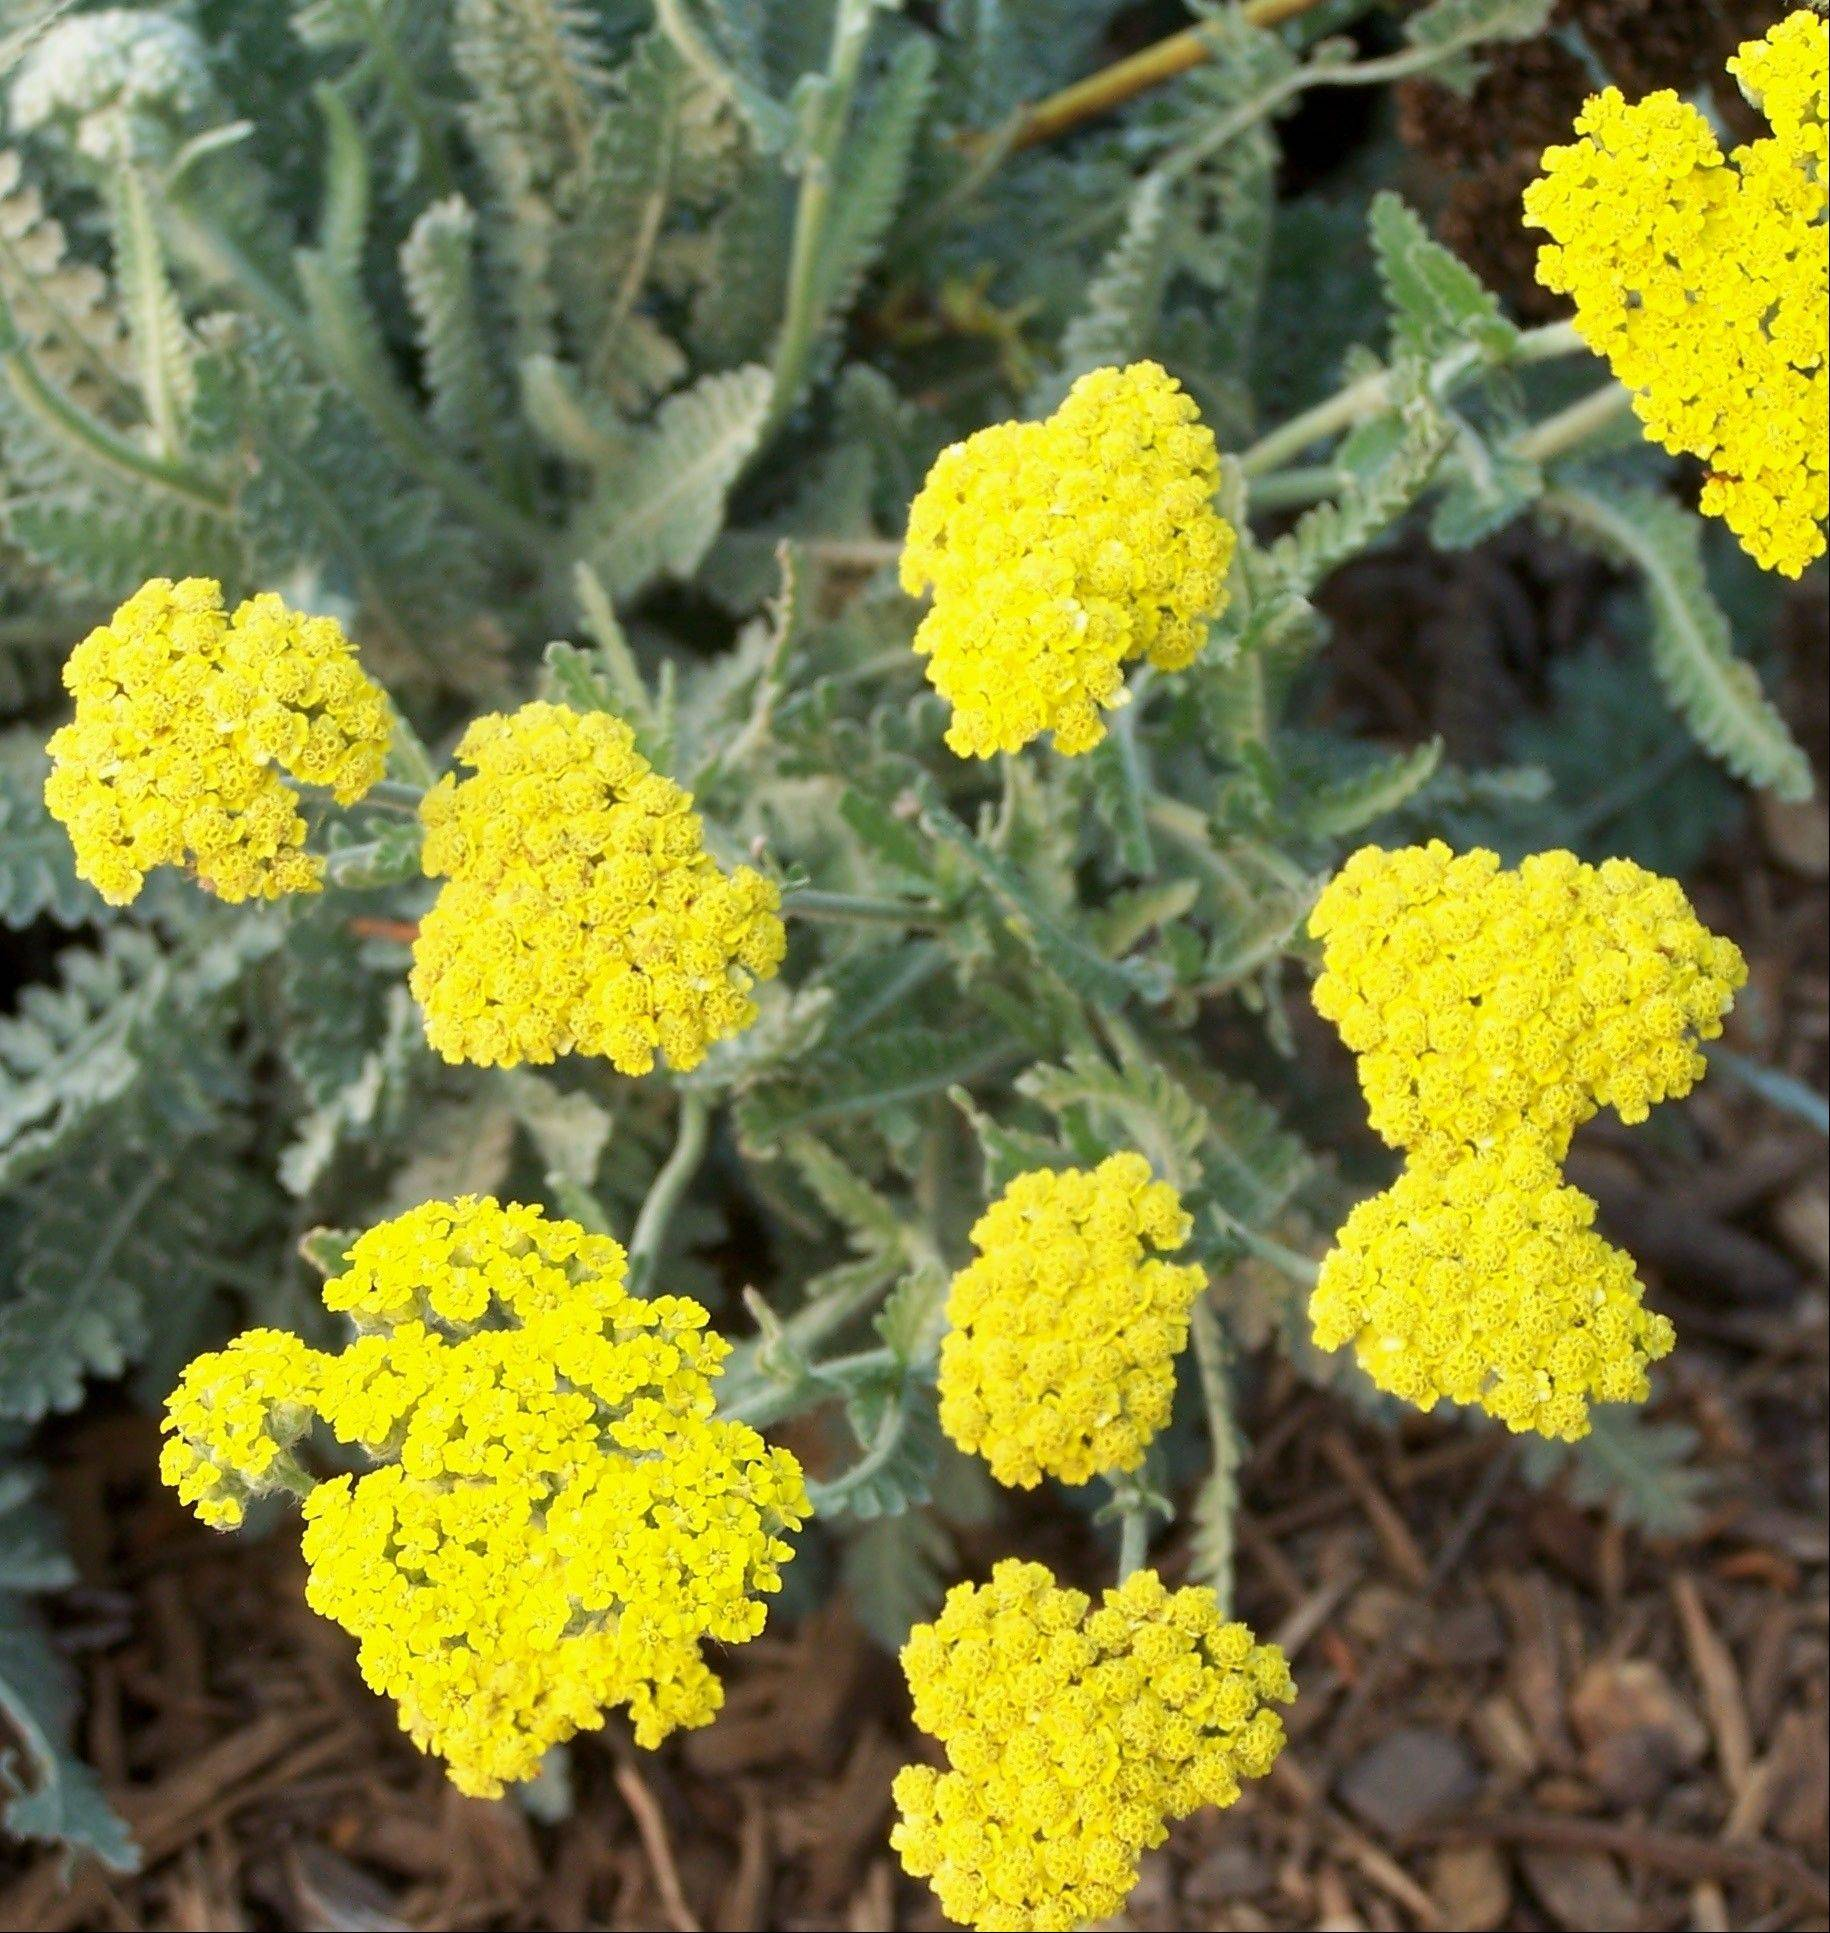 Moonshine yarrow will flower throughout the summer if spent flowers are deadheaded.